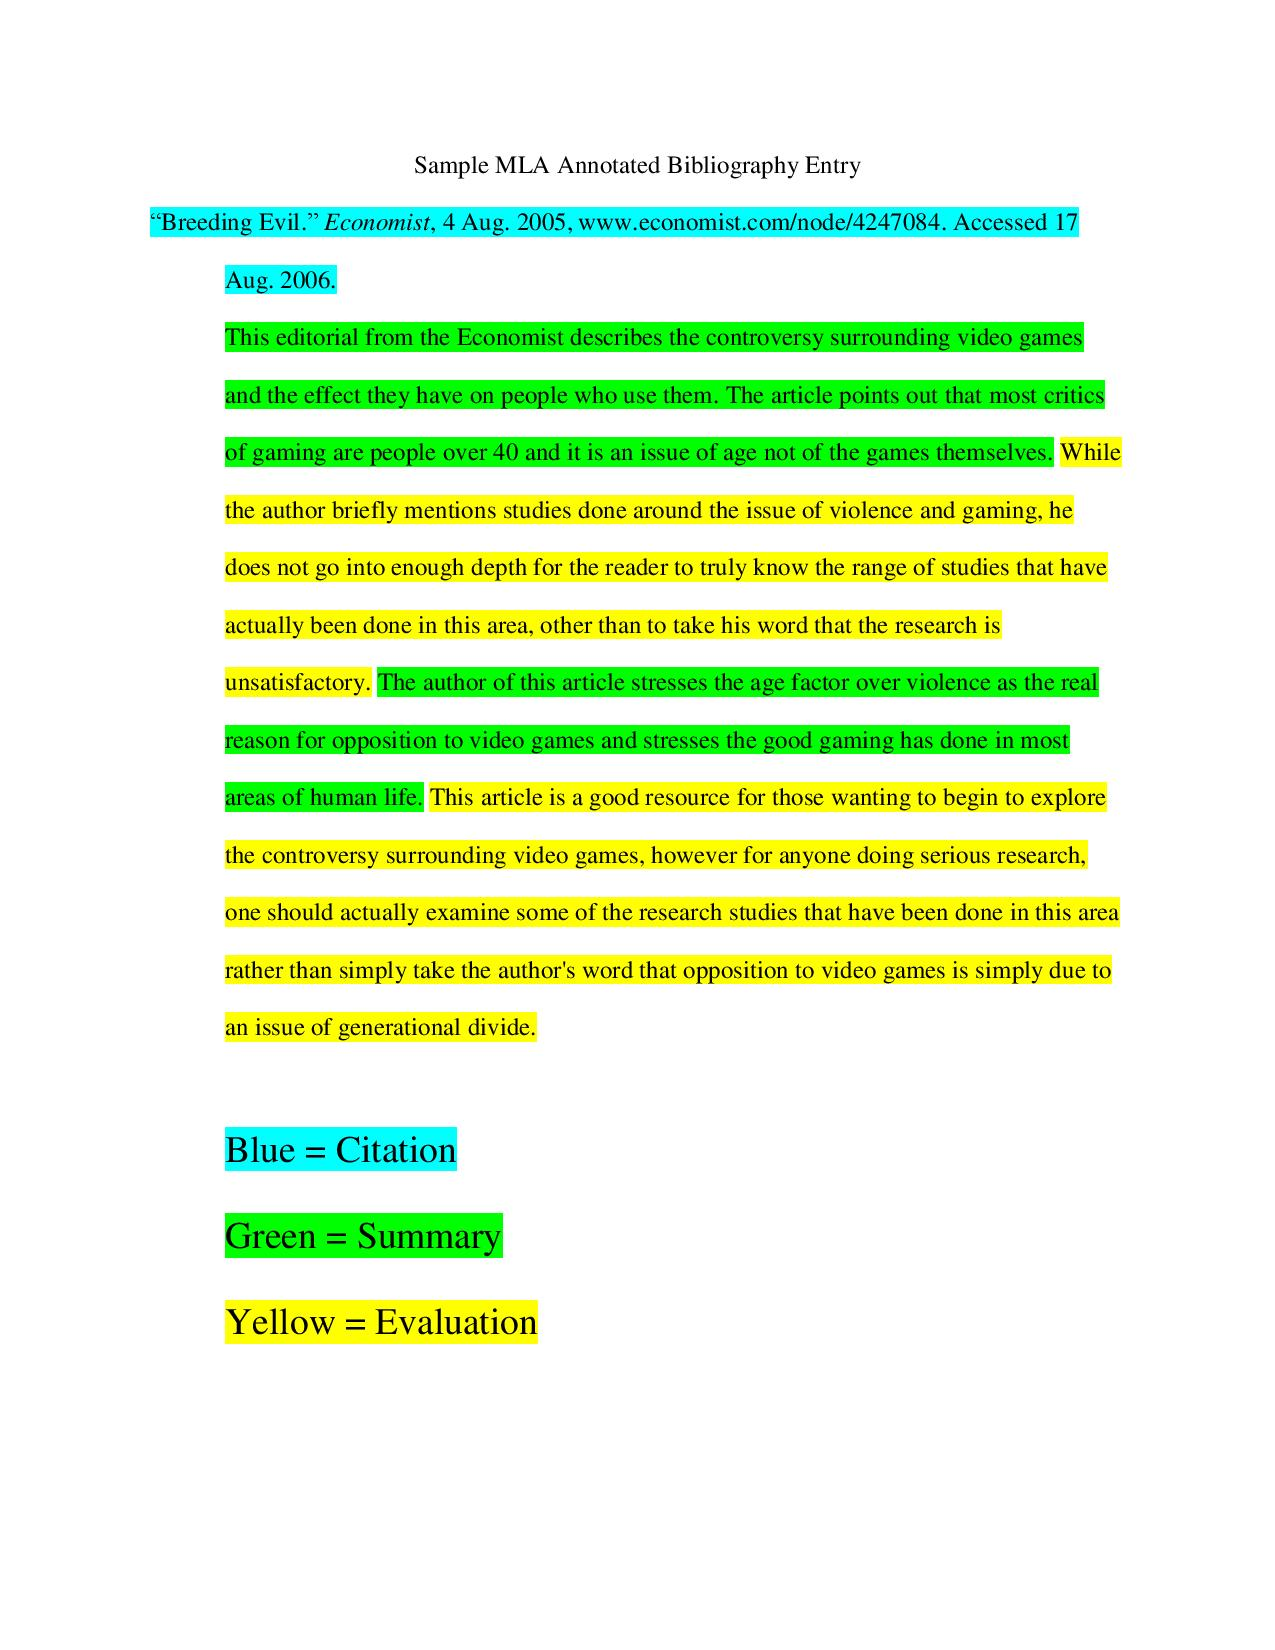 cornell annotated bibliography guide A list of citations on a particular topic followed by an evaluation of the source's  argument and other  cornell annotated bibliography guide.